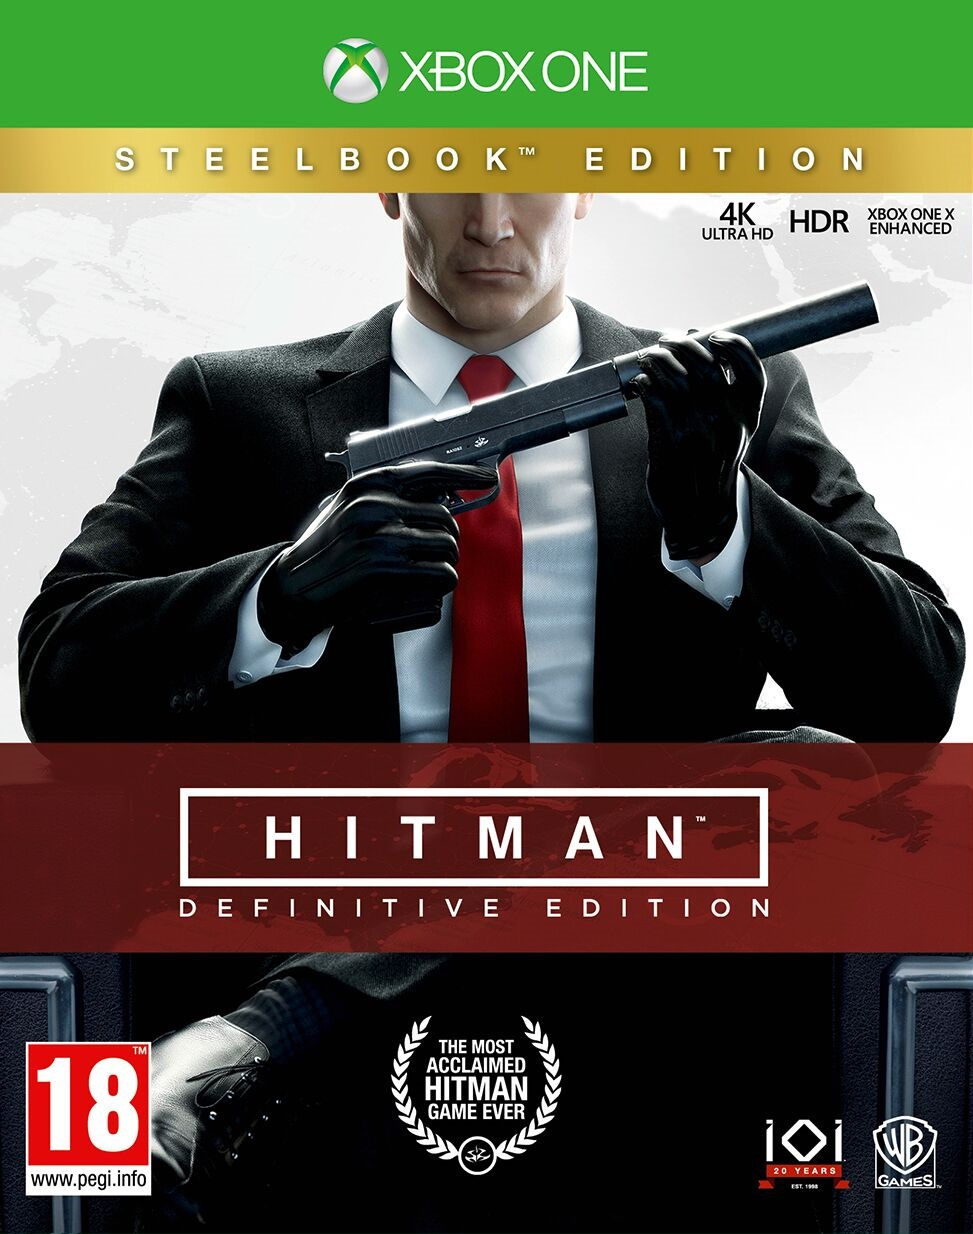 Hitman Steelbook Definitive Edition